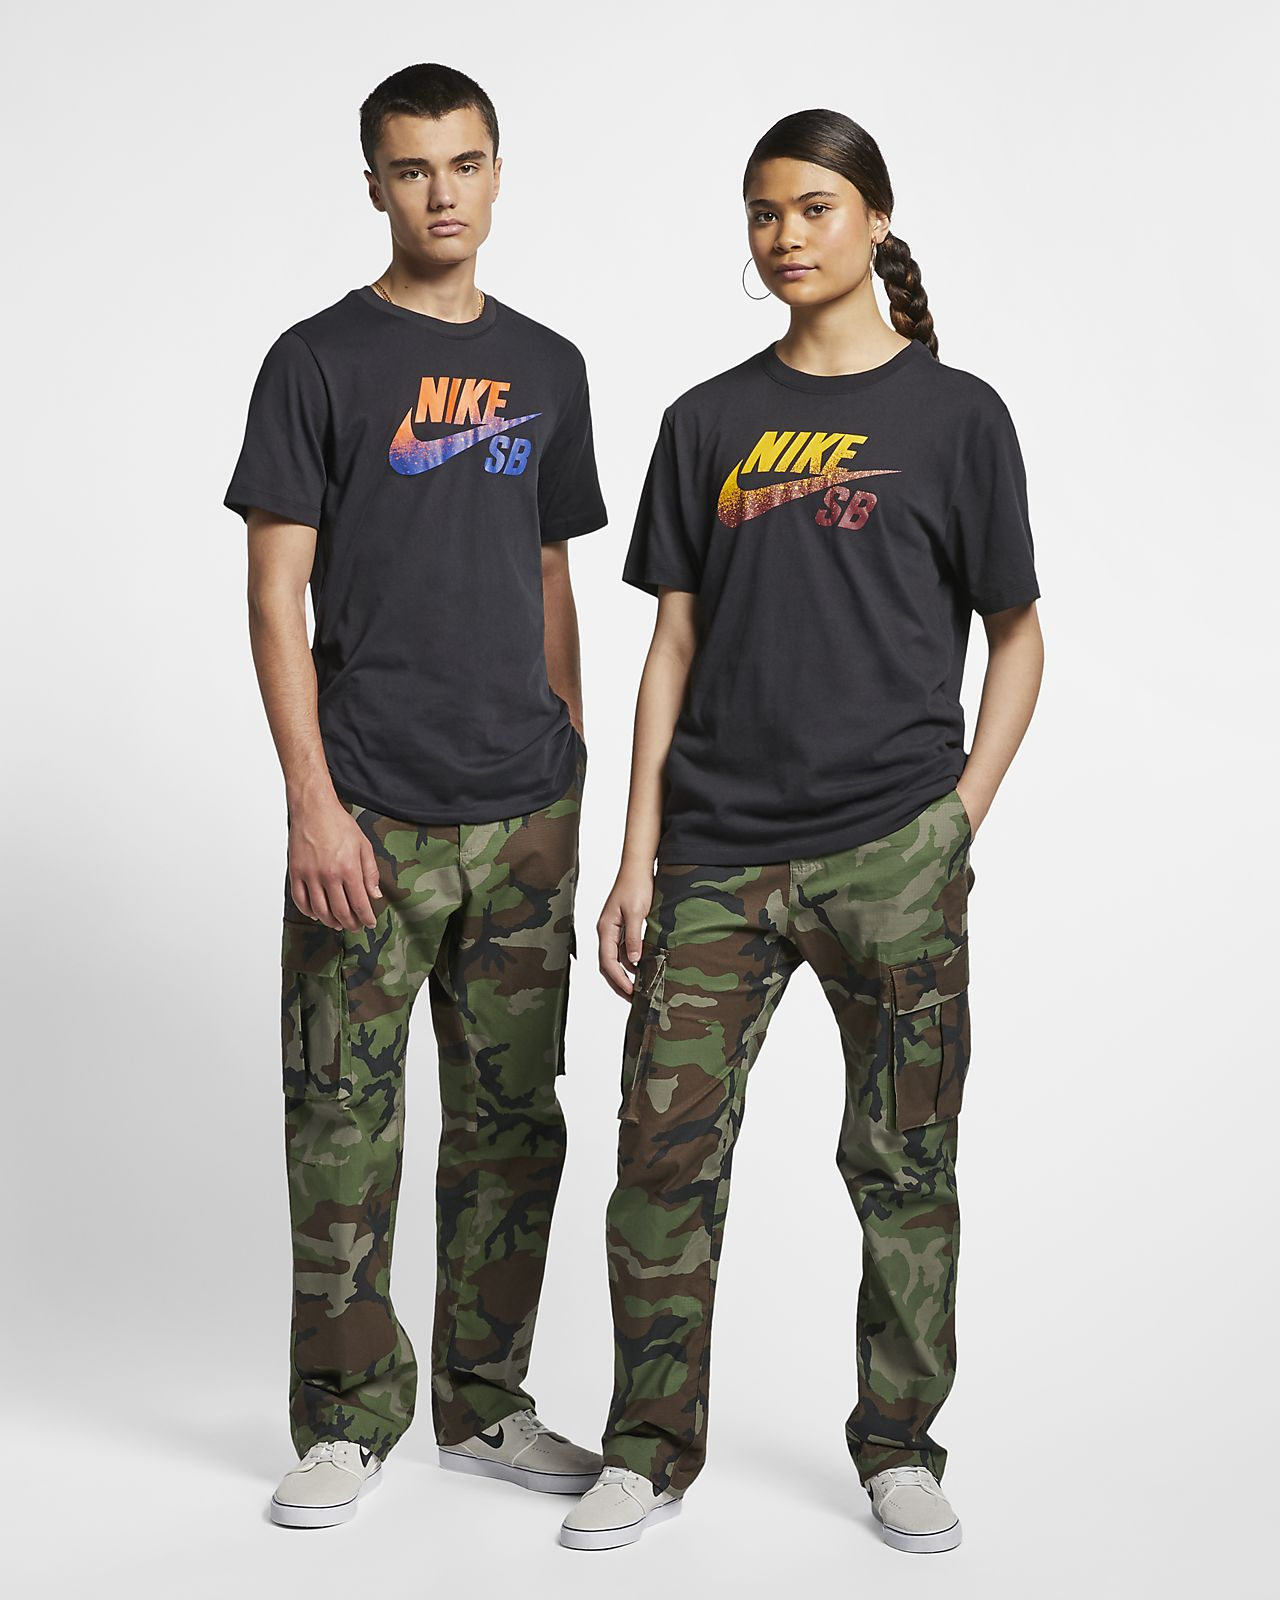 100% satisfaction hot new products aesthetic appearance Nike SB Flex FTM Camo Skate Pants